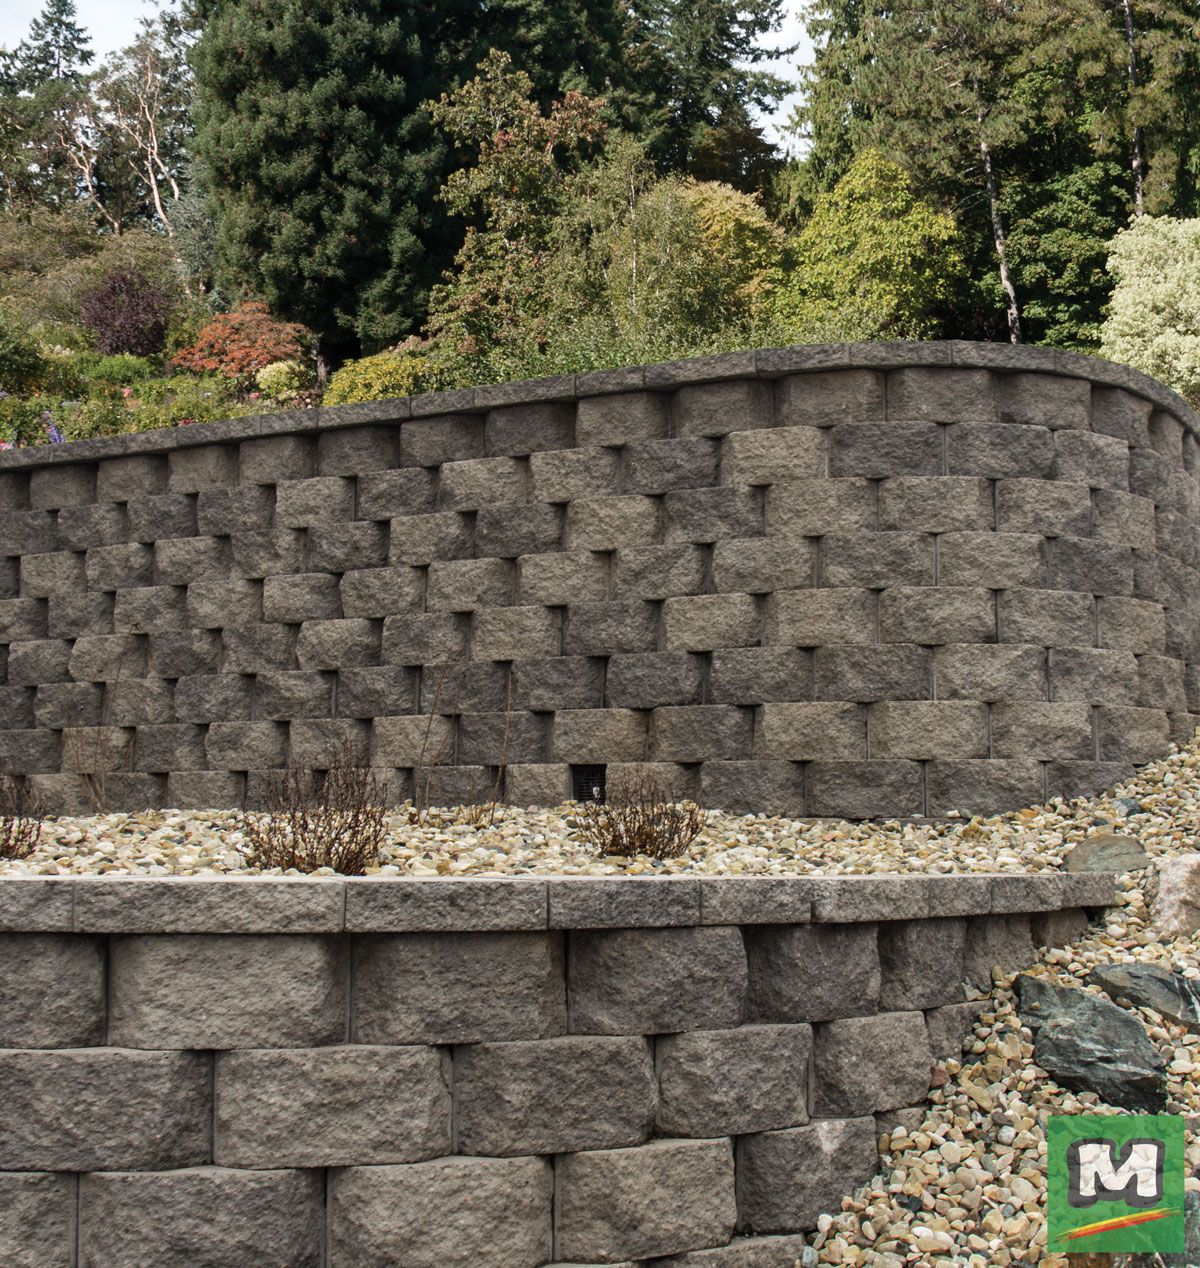 Upgrade Your Landscaping With The Clifton Retaining Wall Block Its Rear Lip Allows For Fast A Landscape Materials Landscaping Inspiration Retaining Wall Block